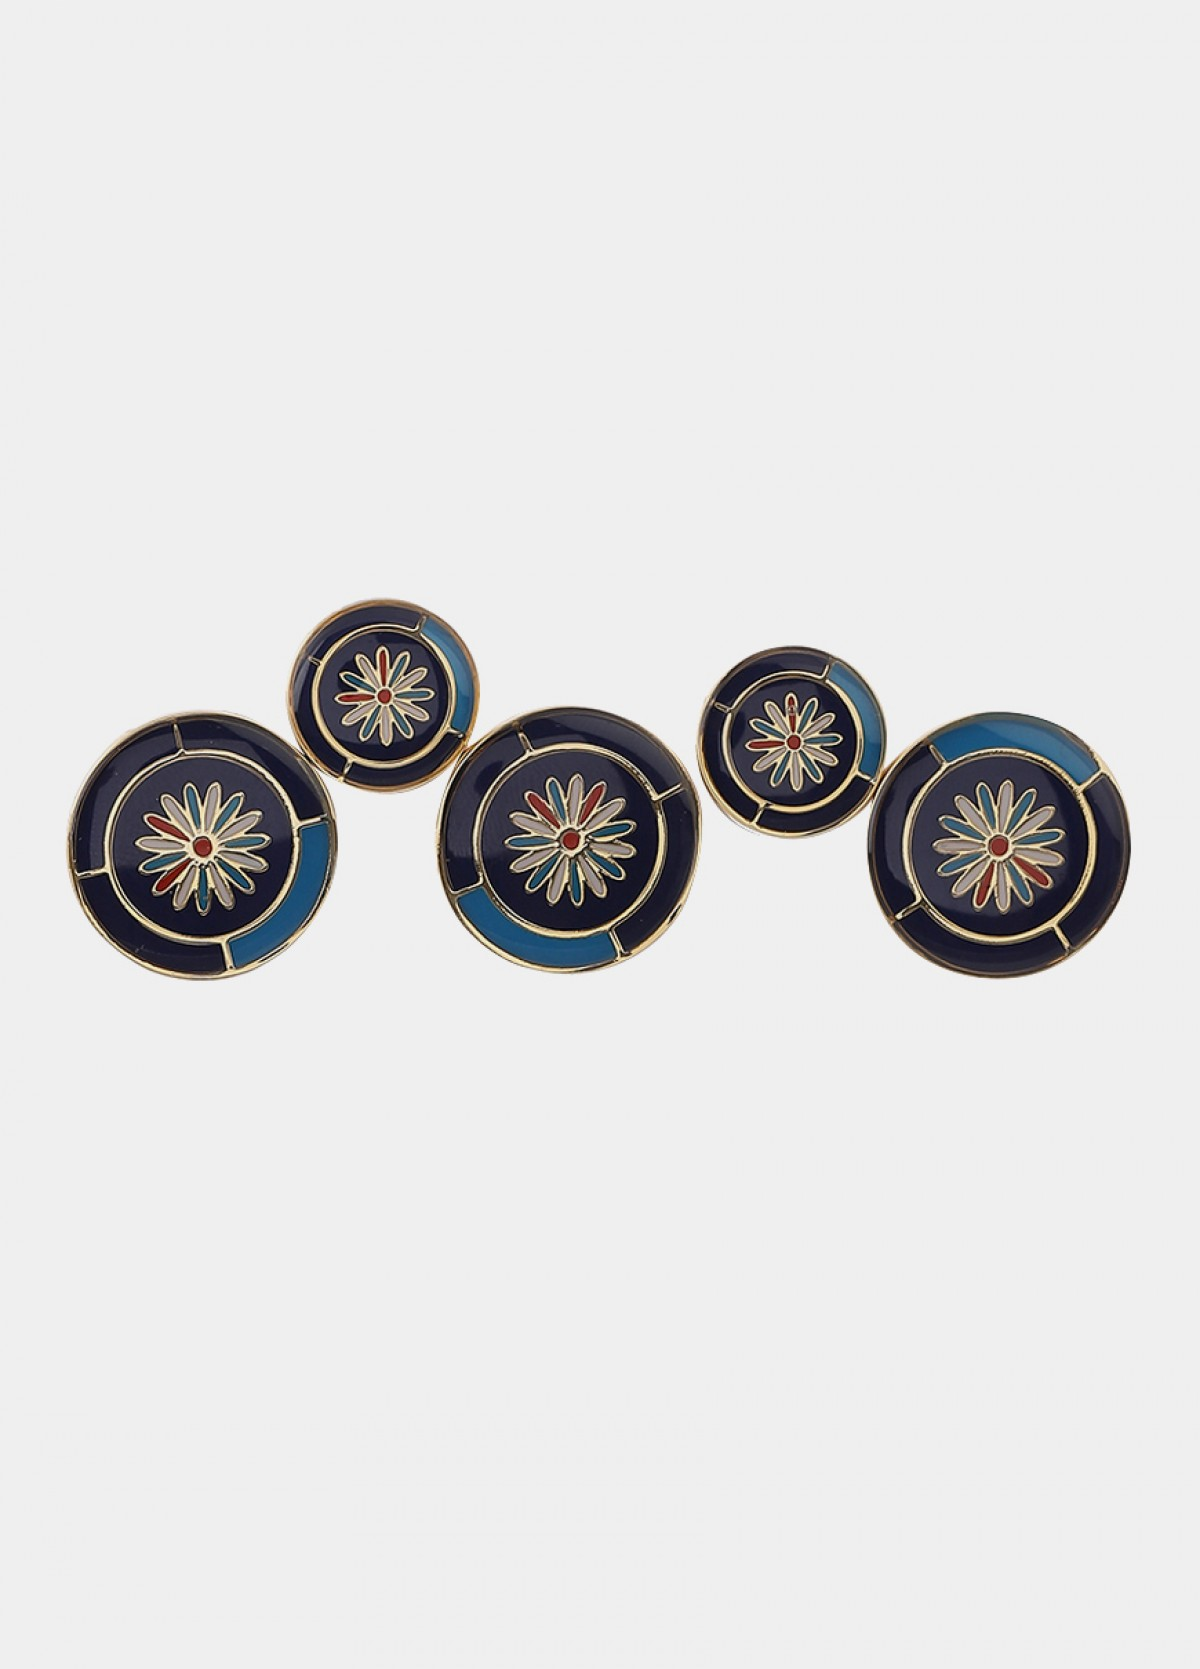 The Jasmine Valley of Flower odd pair Buttons